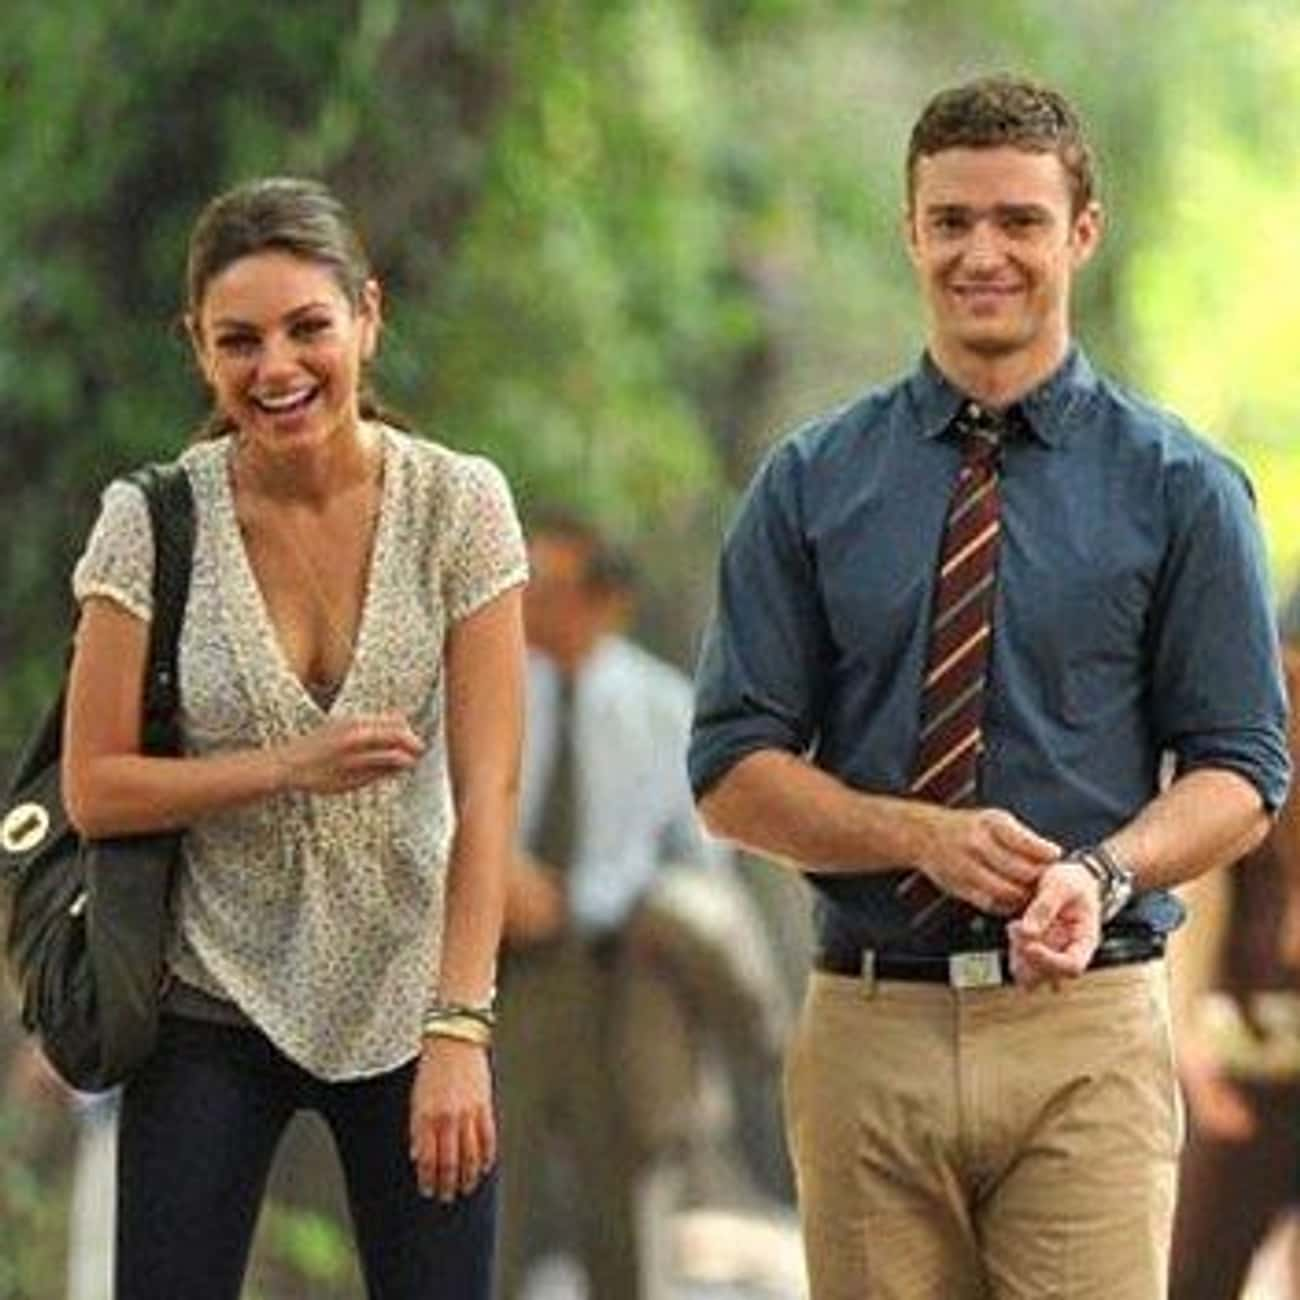 Emotionally Damaged is listed (or ranked) 3 on the list Friends With Benefits Movie Quotes